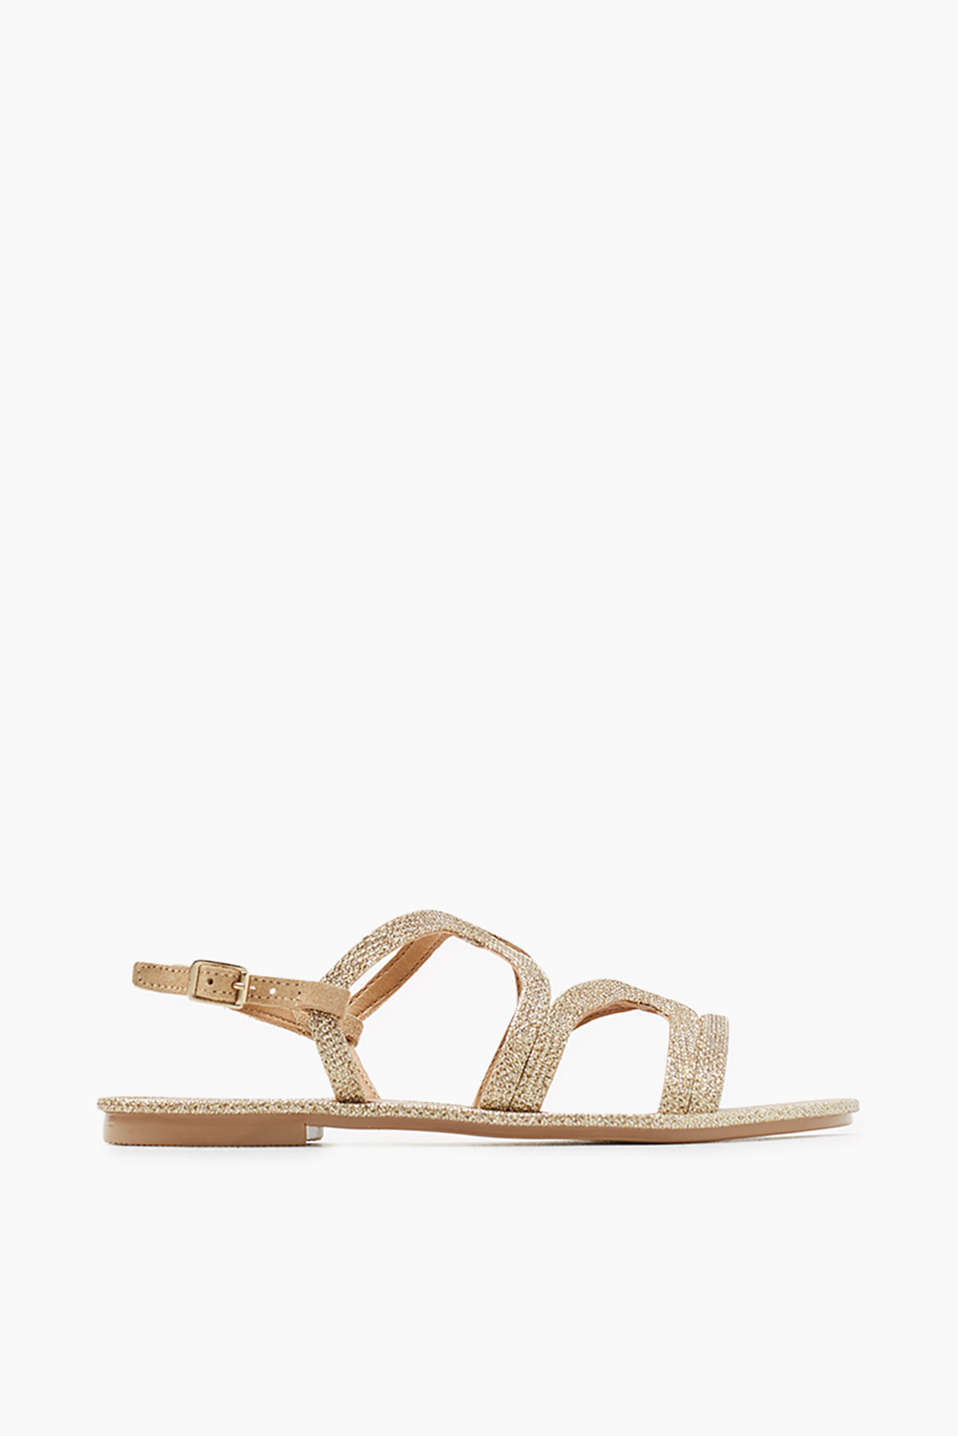 Sandals in an elegant glittery look with cork sole